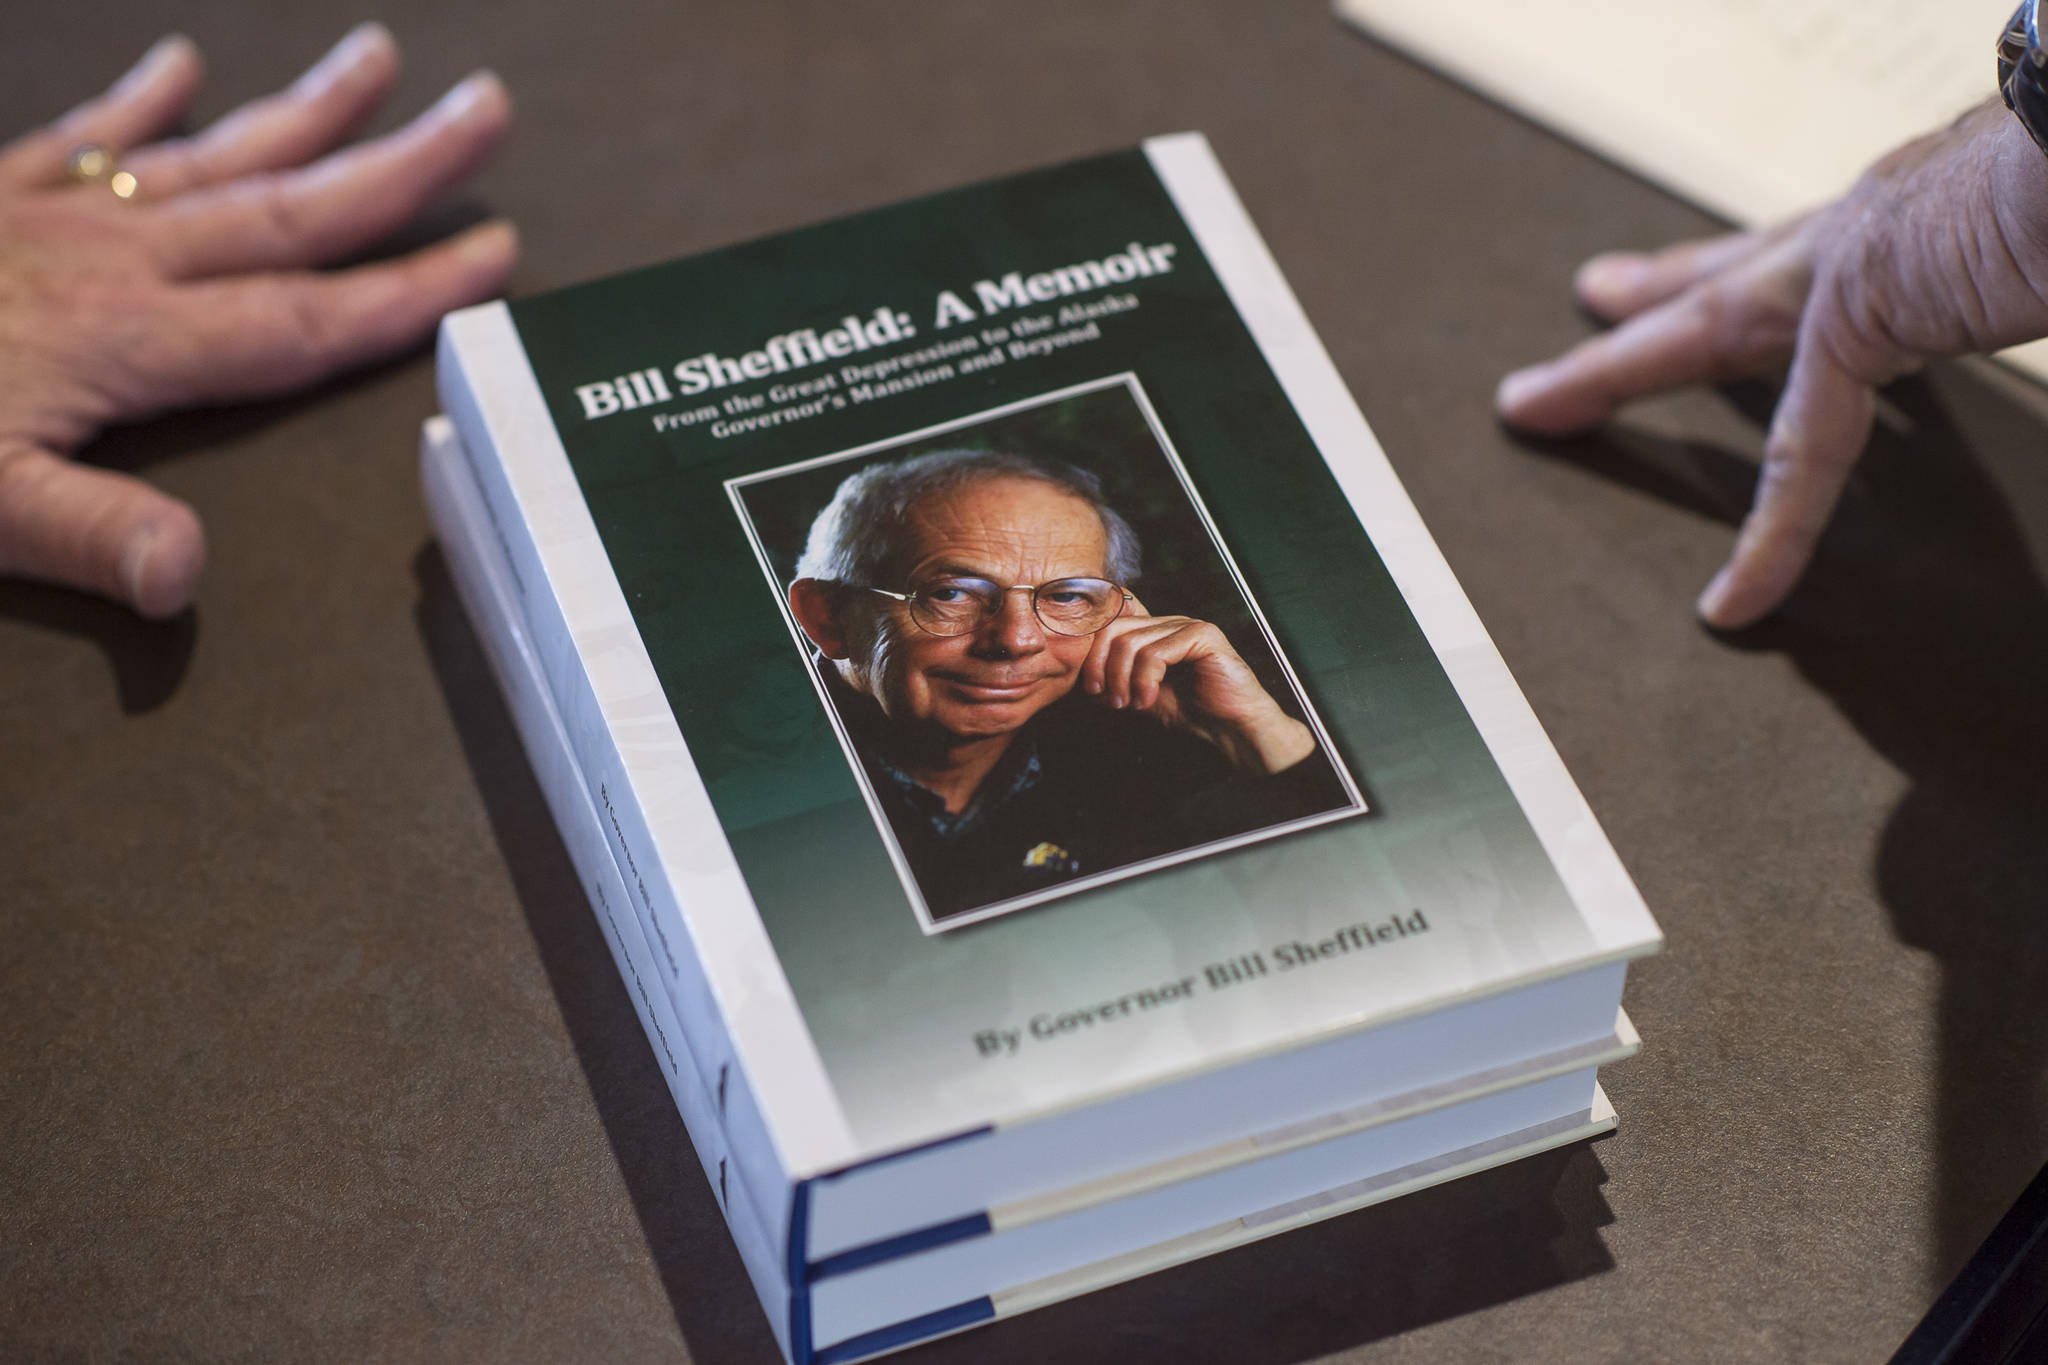 Former Alaska governor Bill Sheffield talks life, time in office and new book